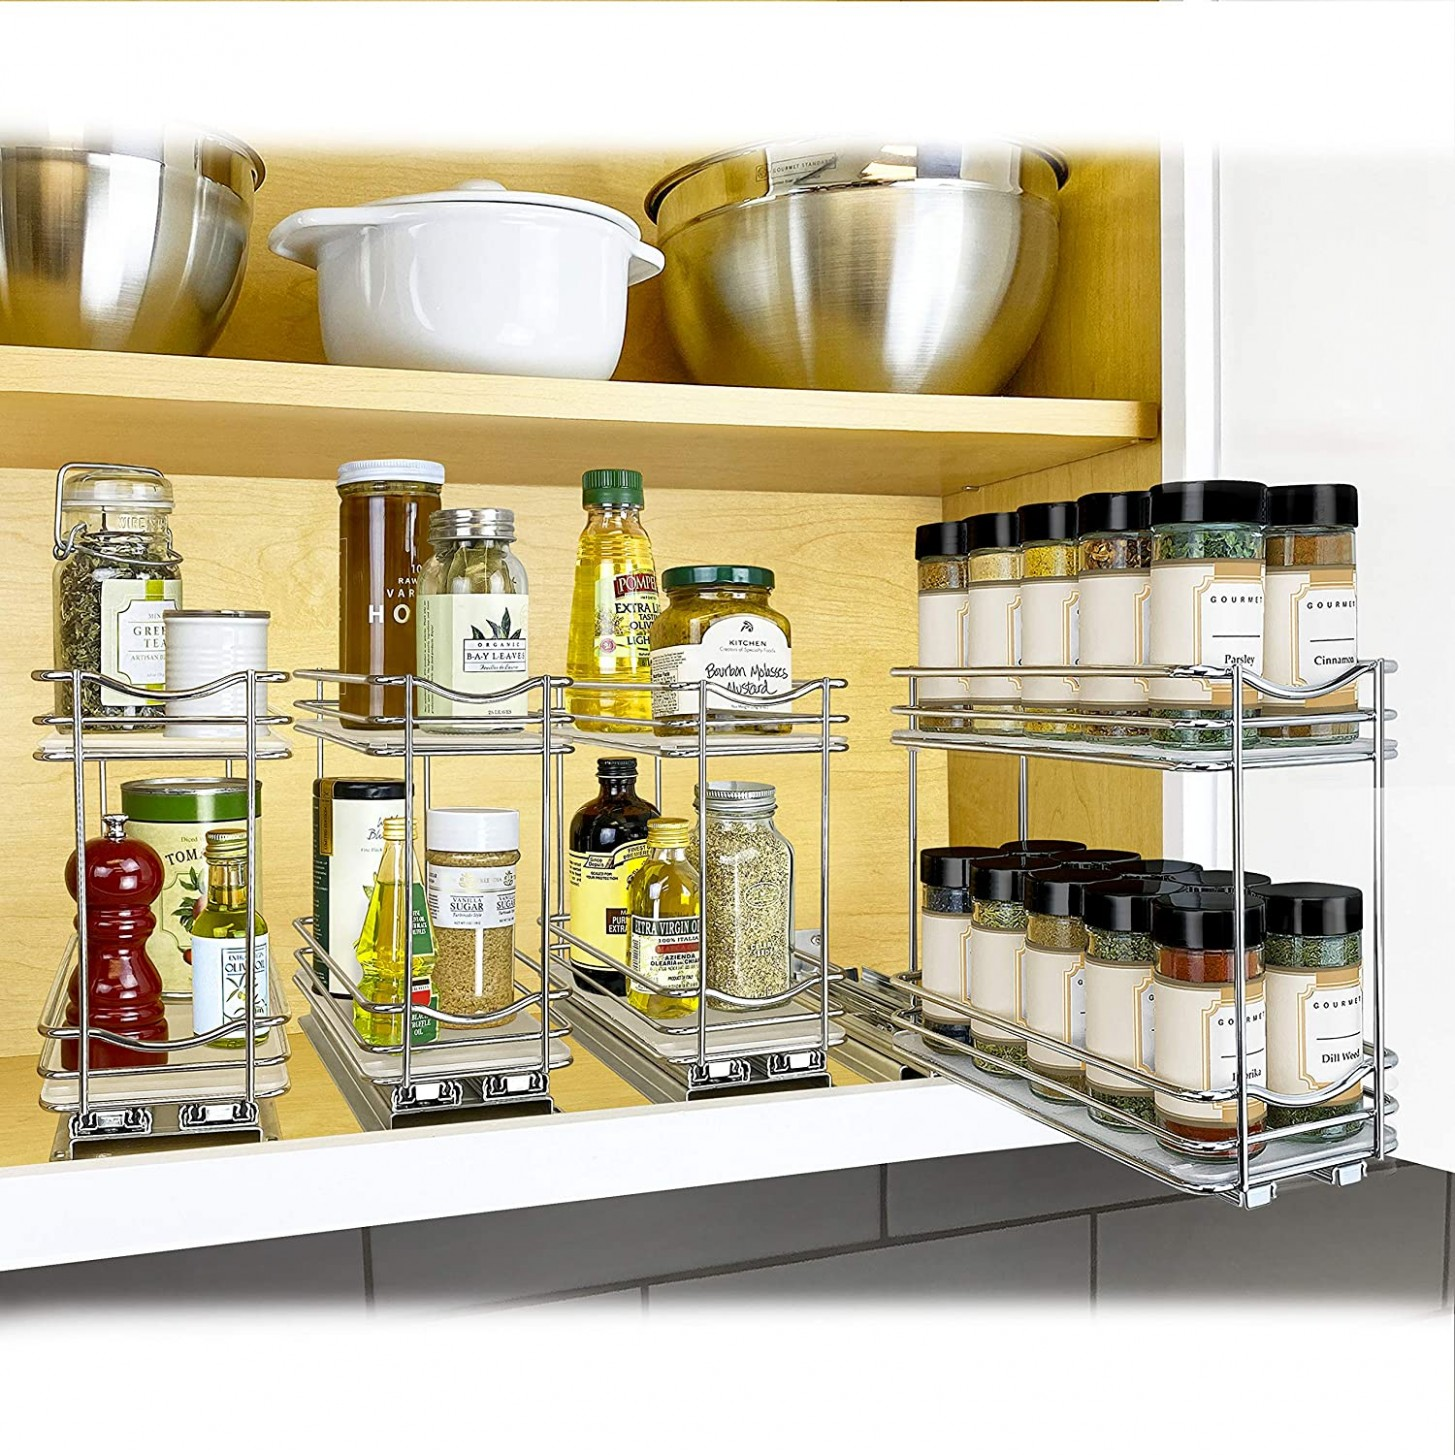 "Lynk Professional Slide Out Double Spice Rack Upper Cabinet Organizer,  9-9/9"", Chrome - 26 X10"